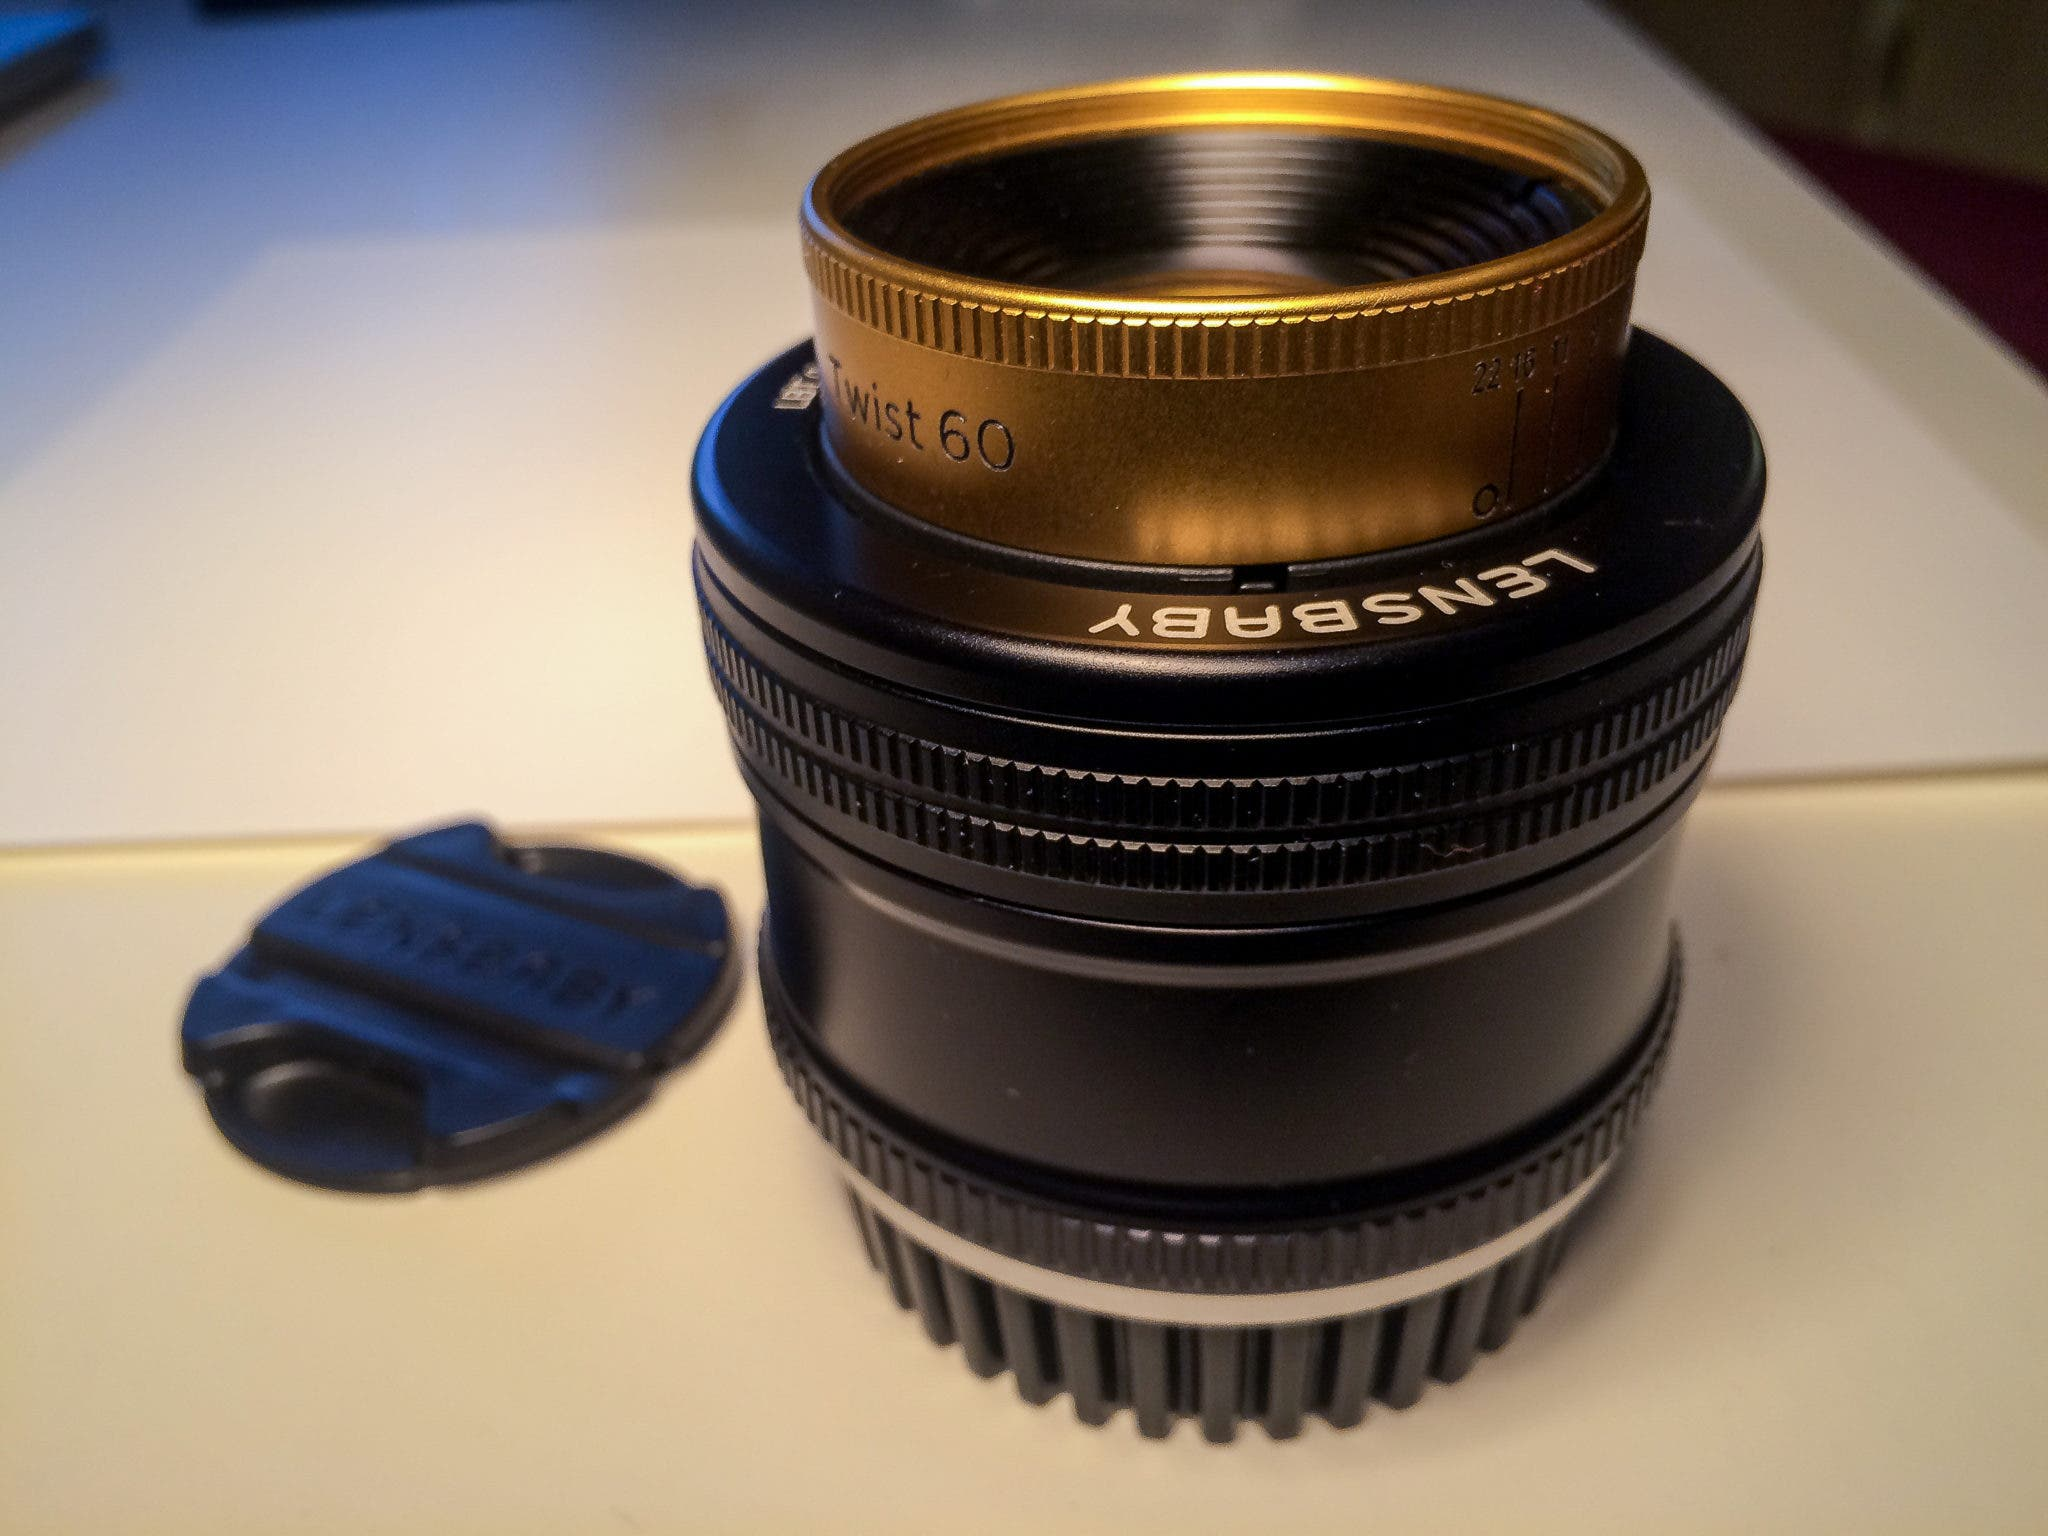 Review: Lensbaby Twist 60 f2.5 (Canon EF)